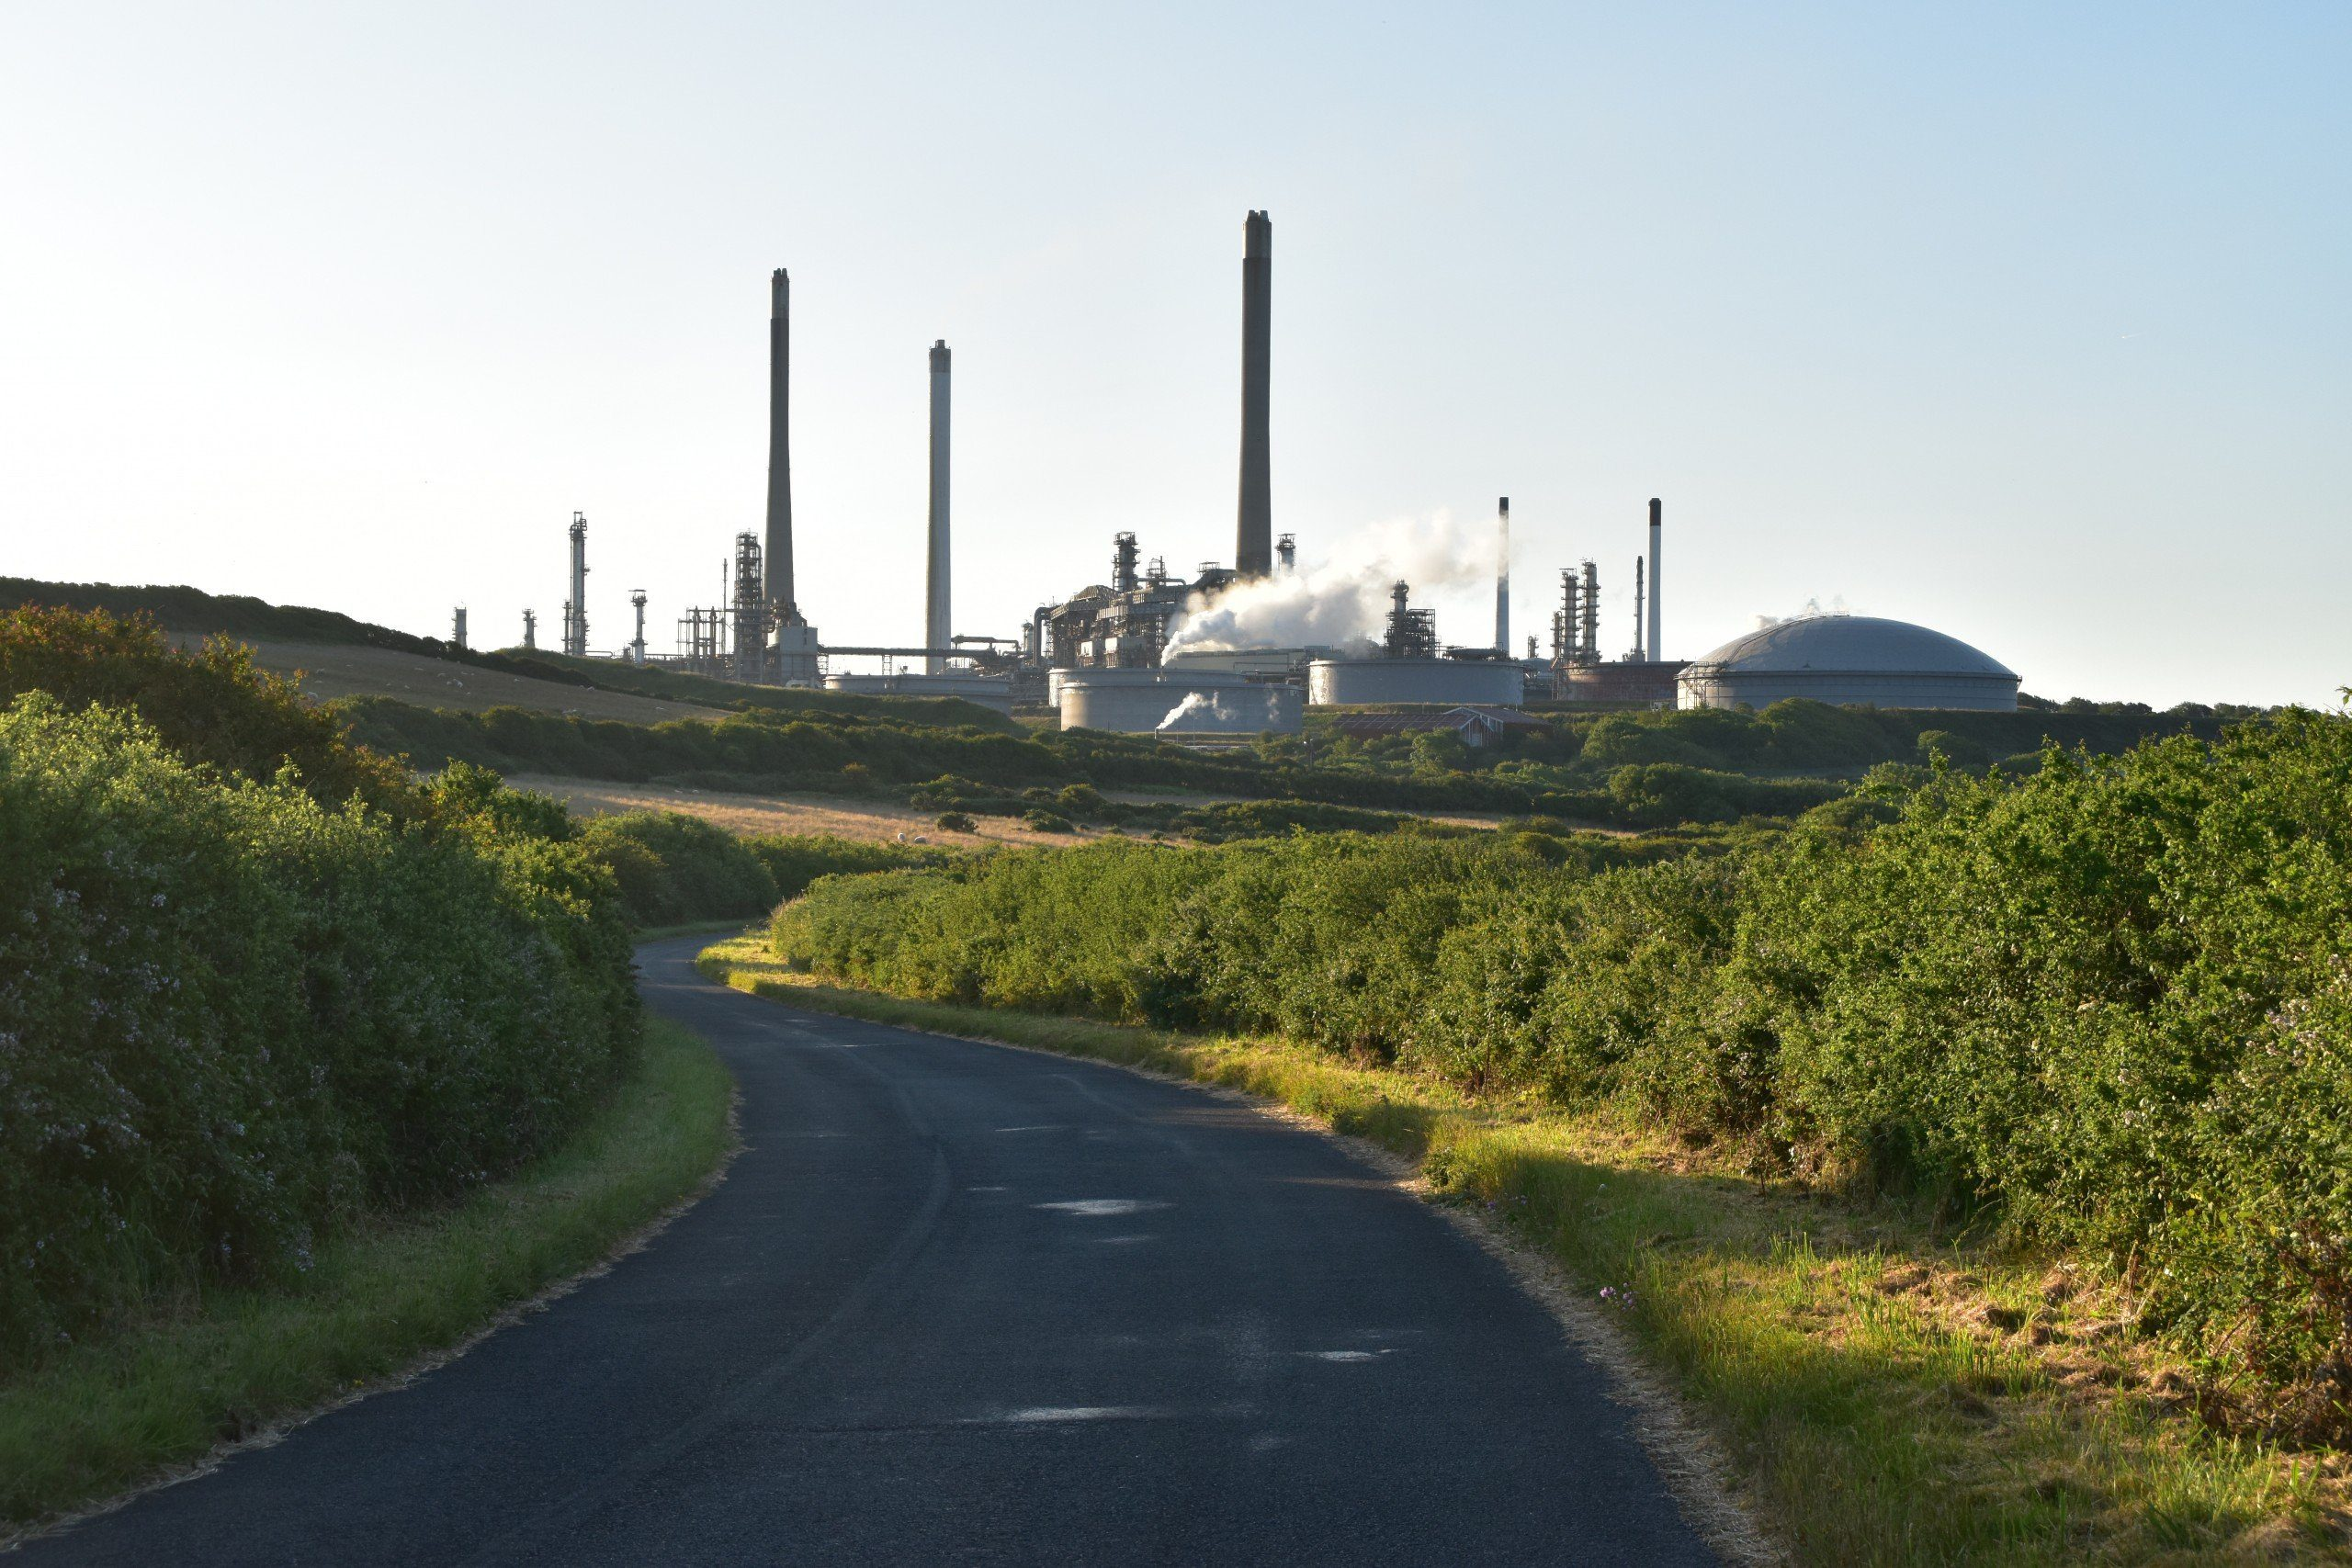 Road leading to chimneys of the oil works at Milford Haven